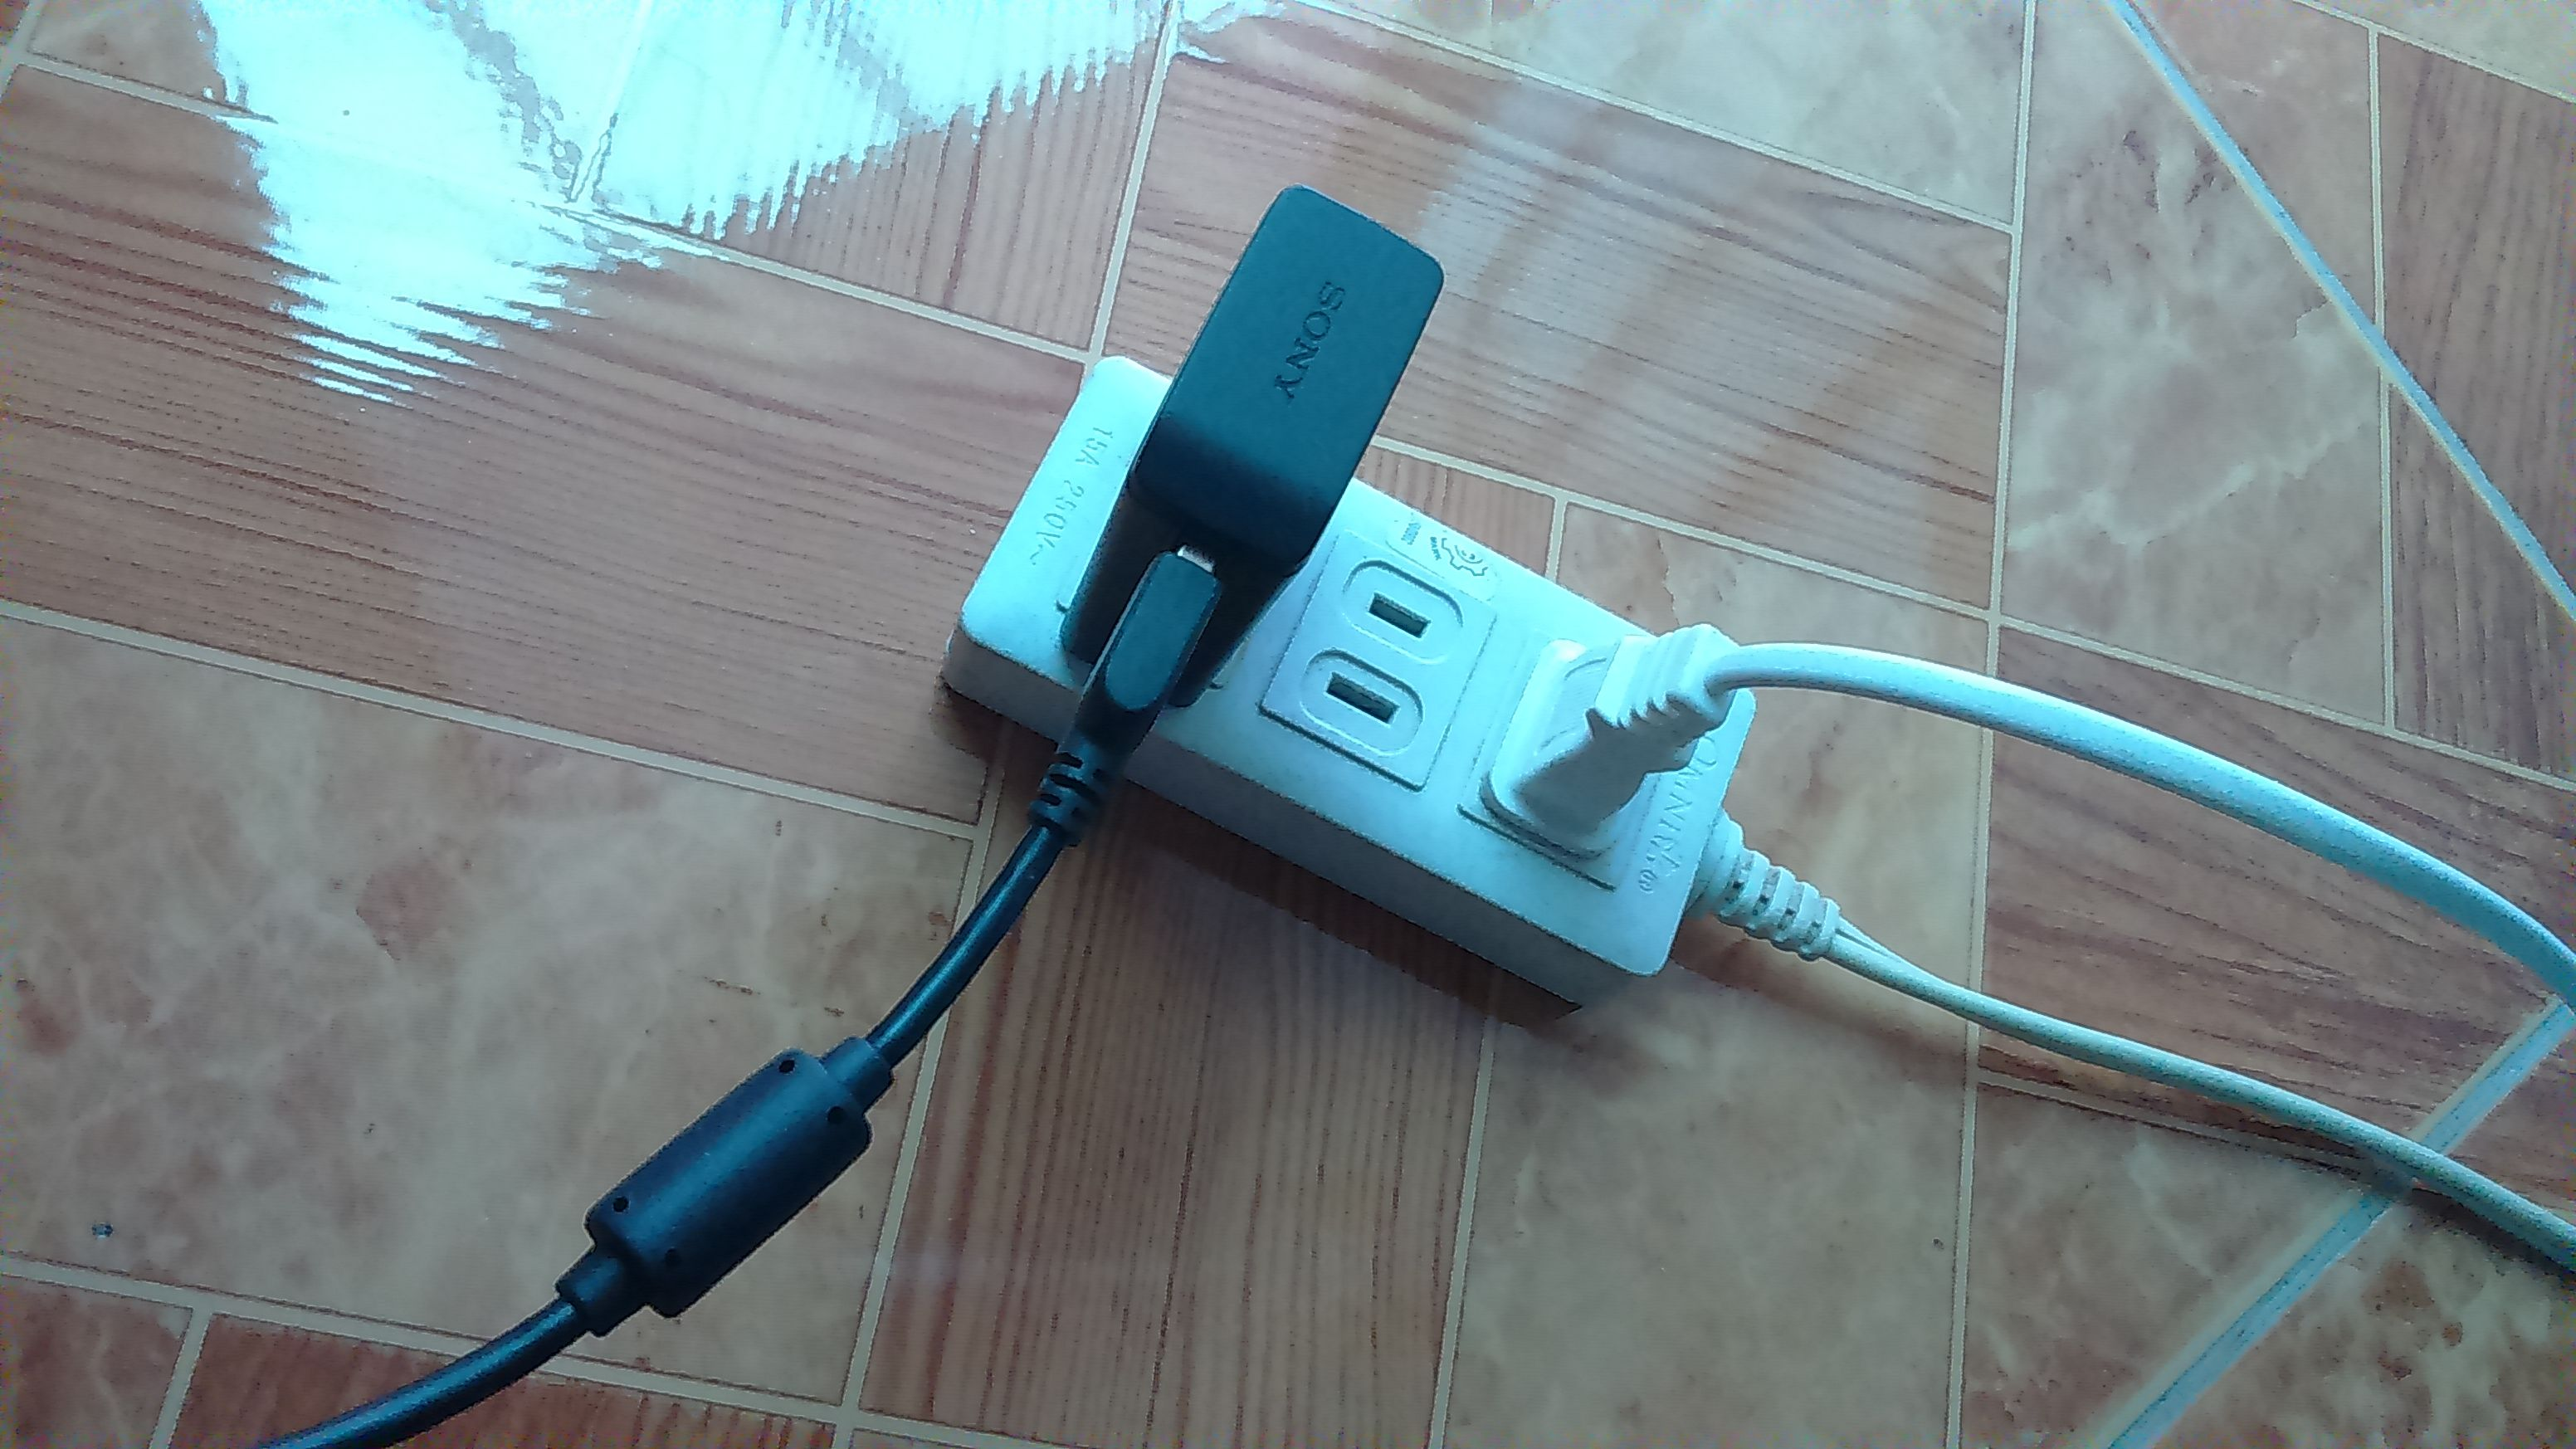 Electrical Safety Tip Never play with electrical cords